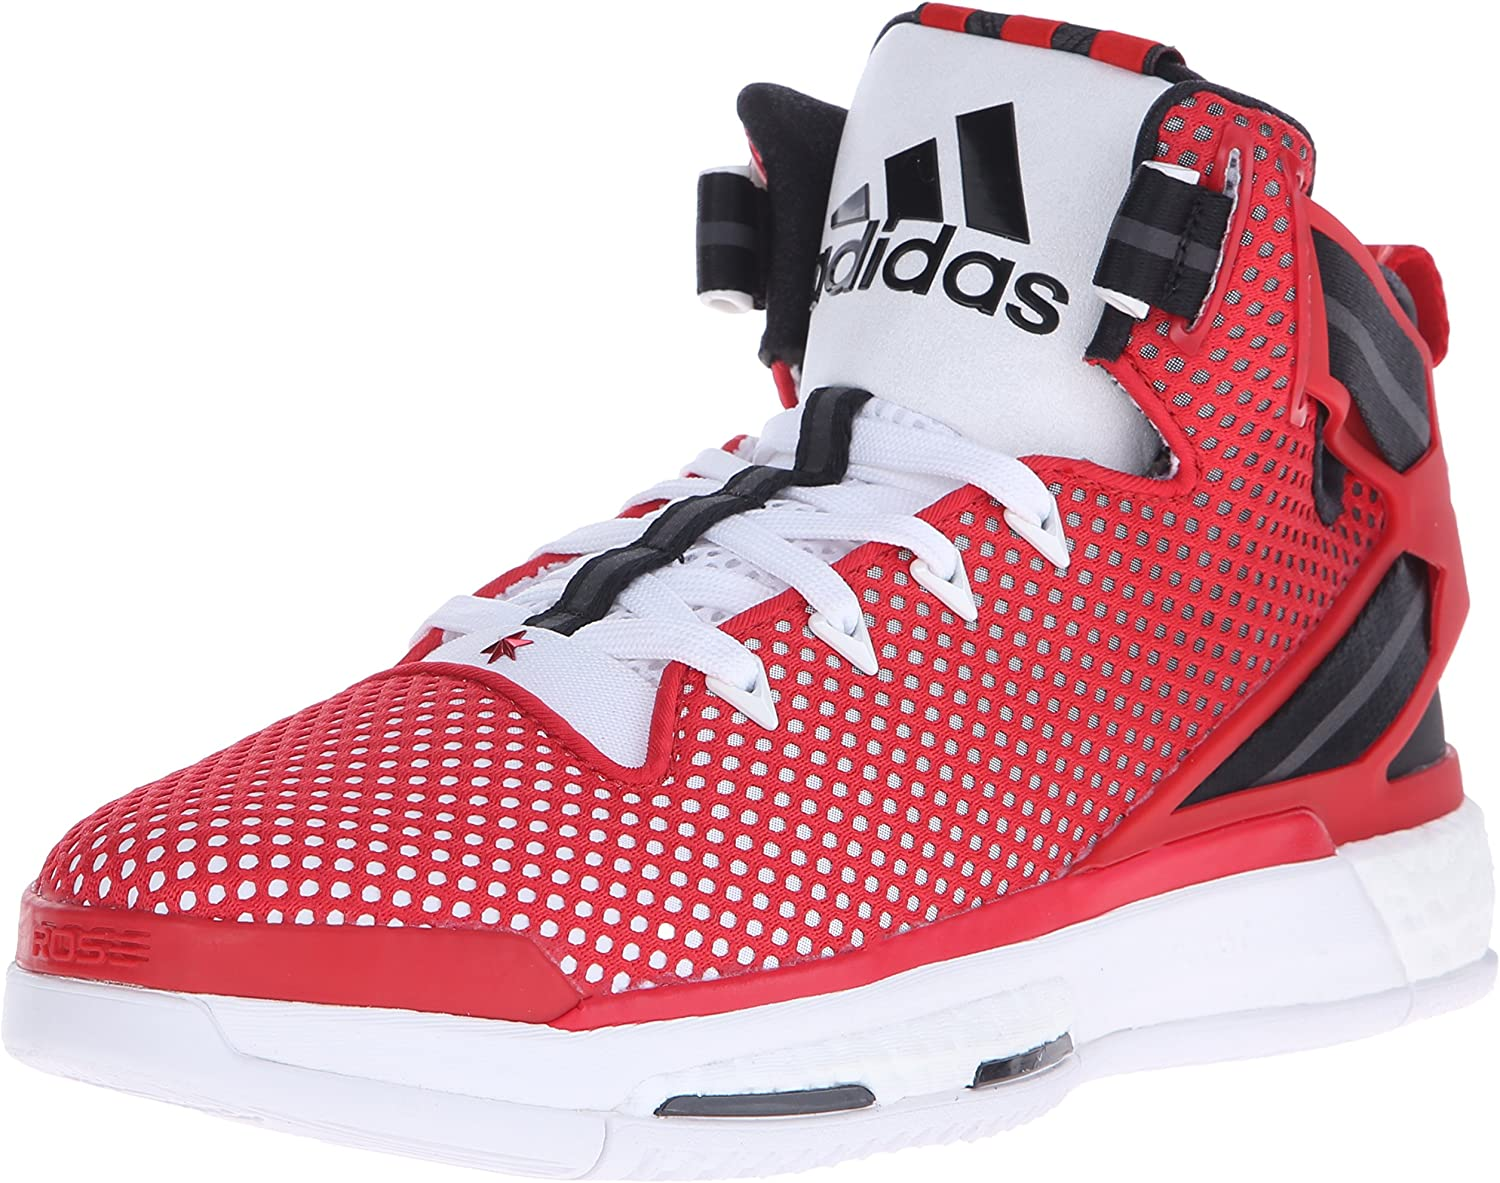 2adidas d rose boost 6